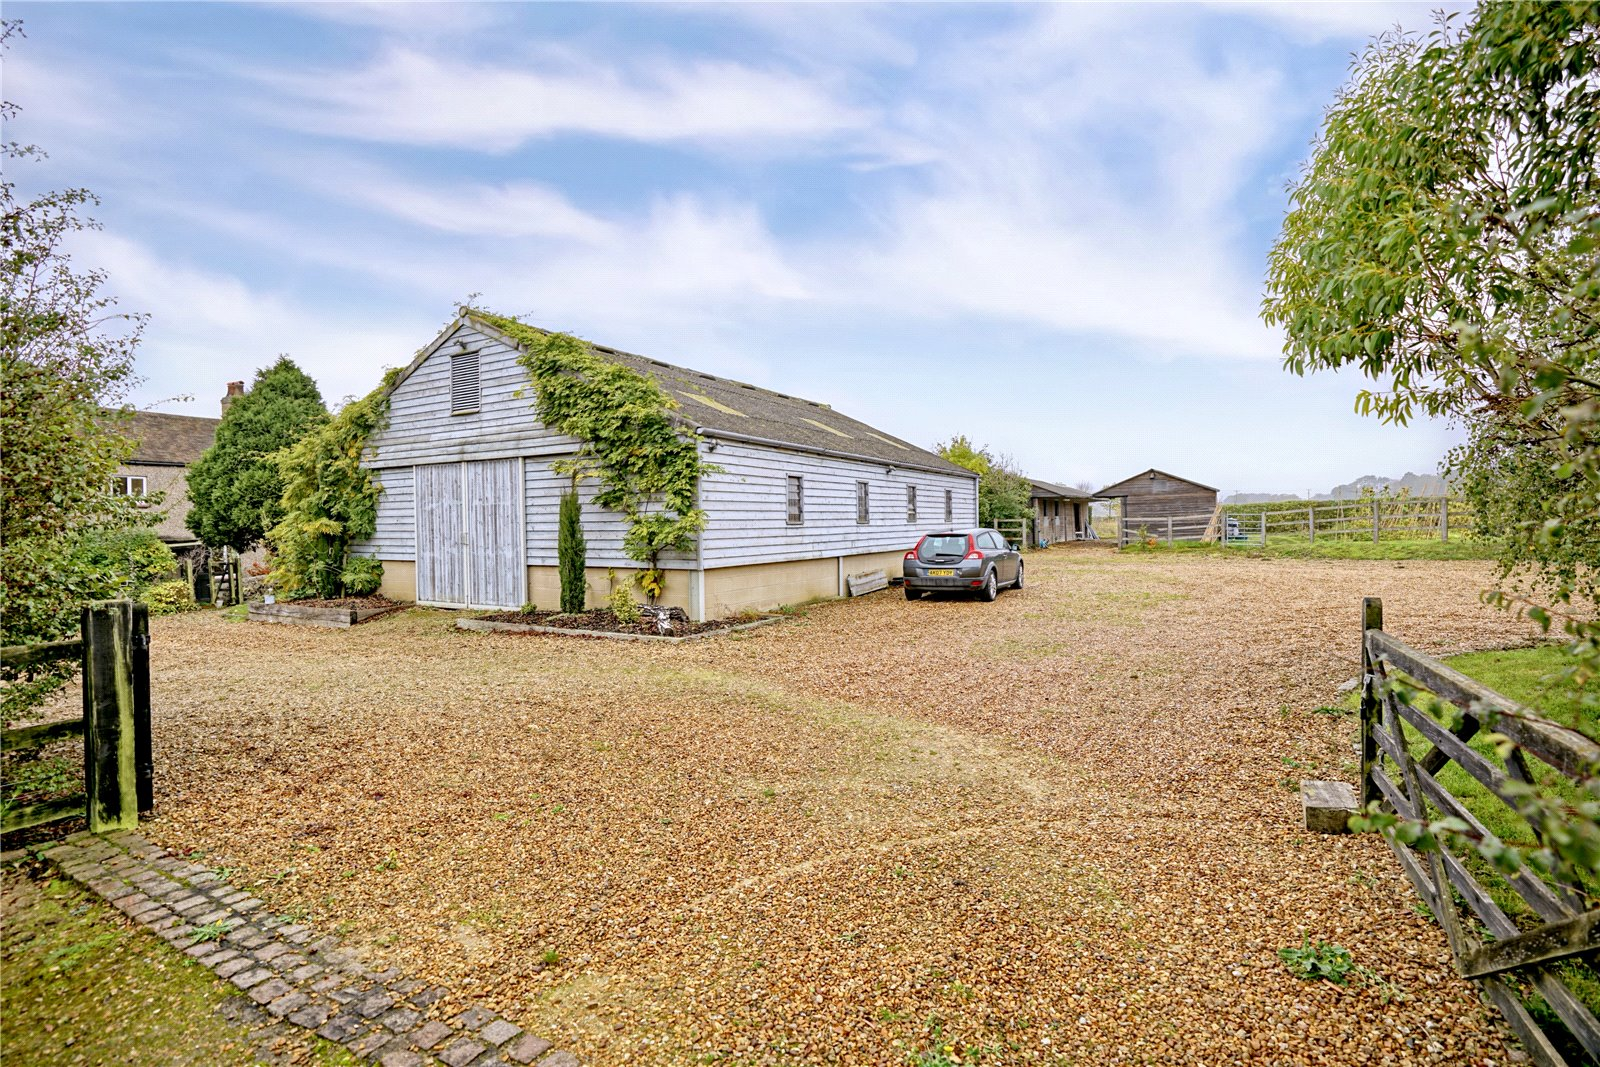 4 bed house for sale in Honeydon, Bedford 13